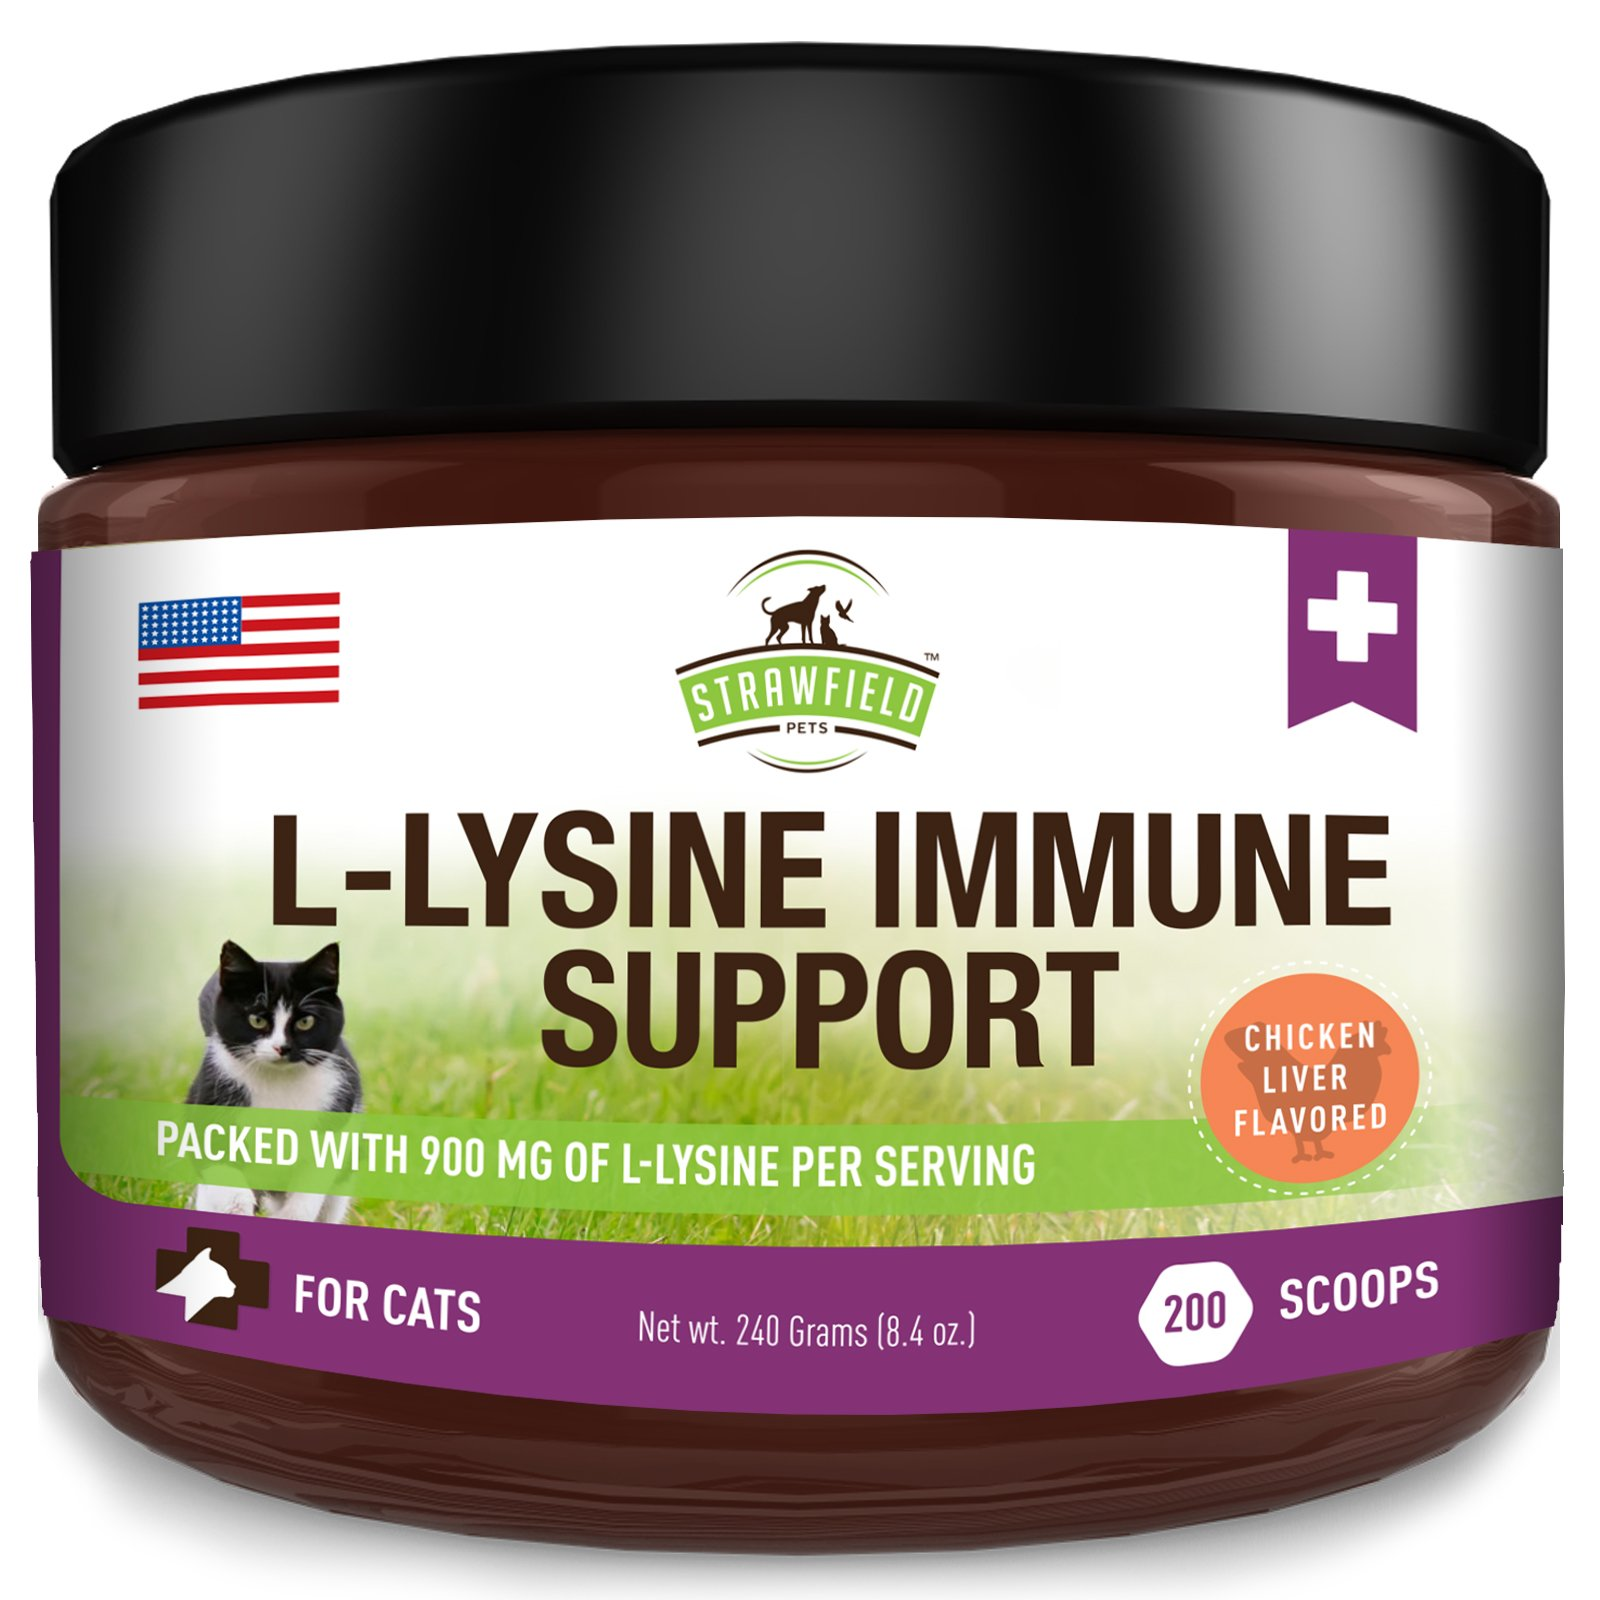 Lysine for Cats - L Lysine Powder Cat Supplements - 900mg, 200 Scoops - Llysine Kitten + Cat Immune System Support Supplement for Cold, Sneezing, Eye Health, Upper Respiratory Infection Treatment, USA by Strawfield Pets